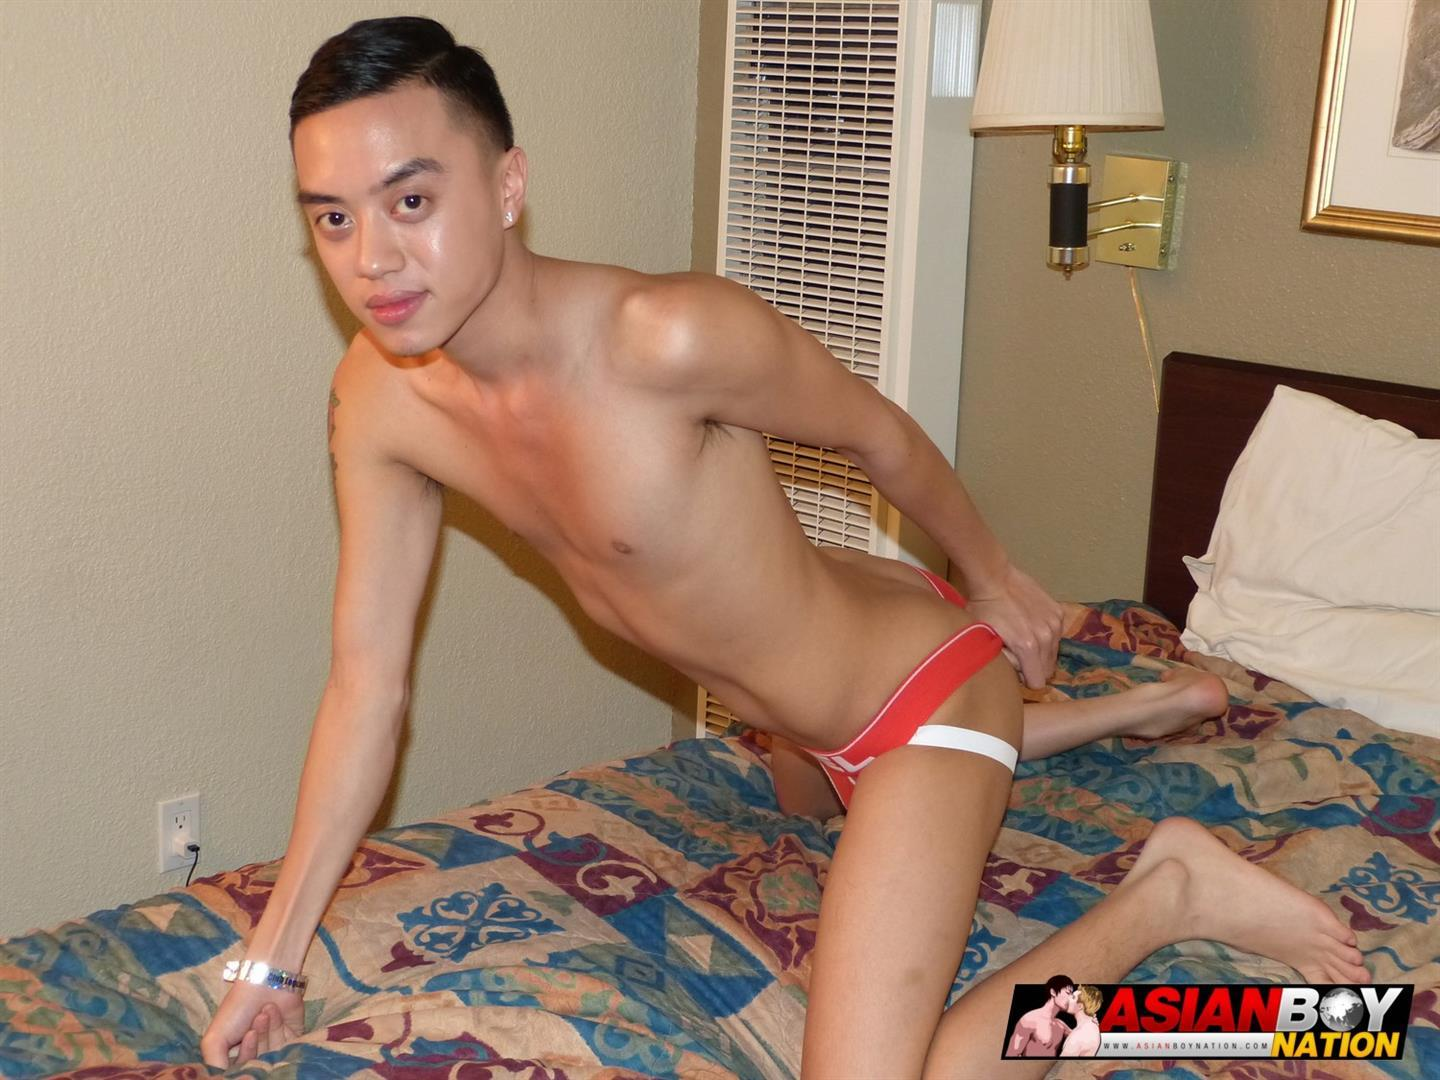 Asian-Boy-Nation-Dax-Masters-and-Coda-Filthy-Red-Head-Ginger-Fucking-An-Asian-Bottom-Amateur-Gay-Porn-12 Asian Boy Gets Fucked By His Ginger Boyfriends Thick Cock